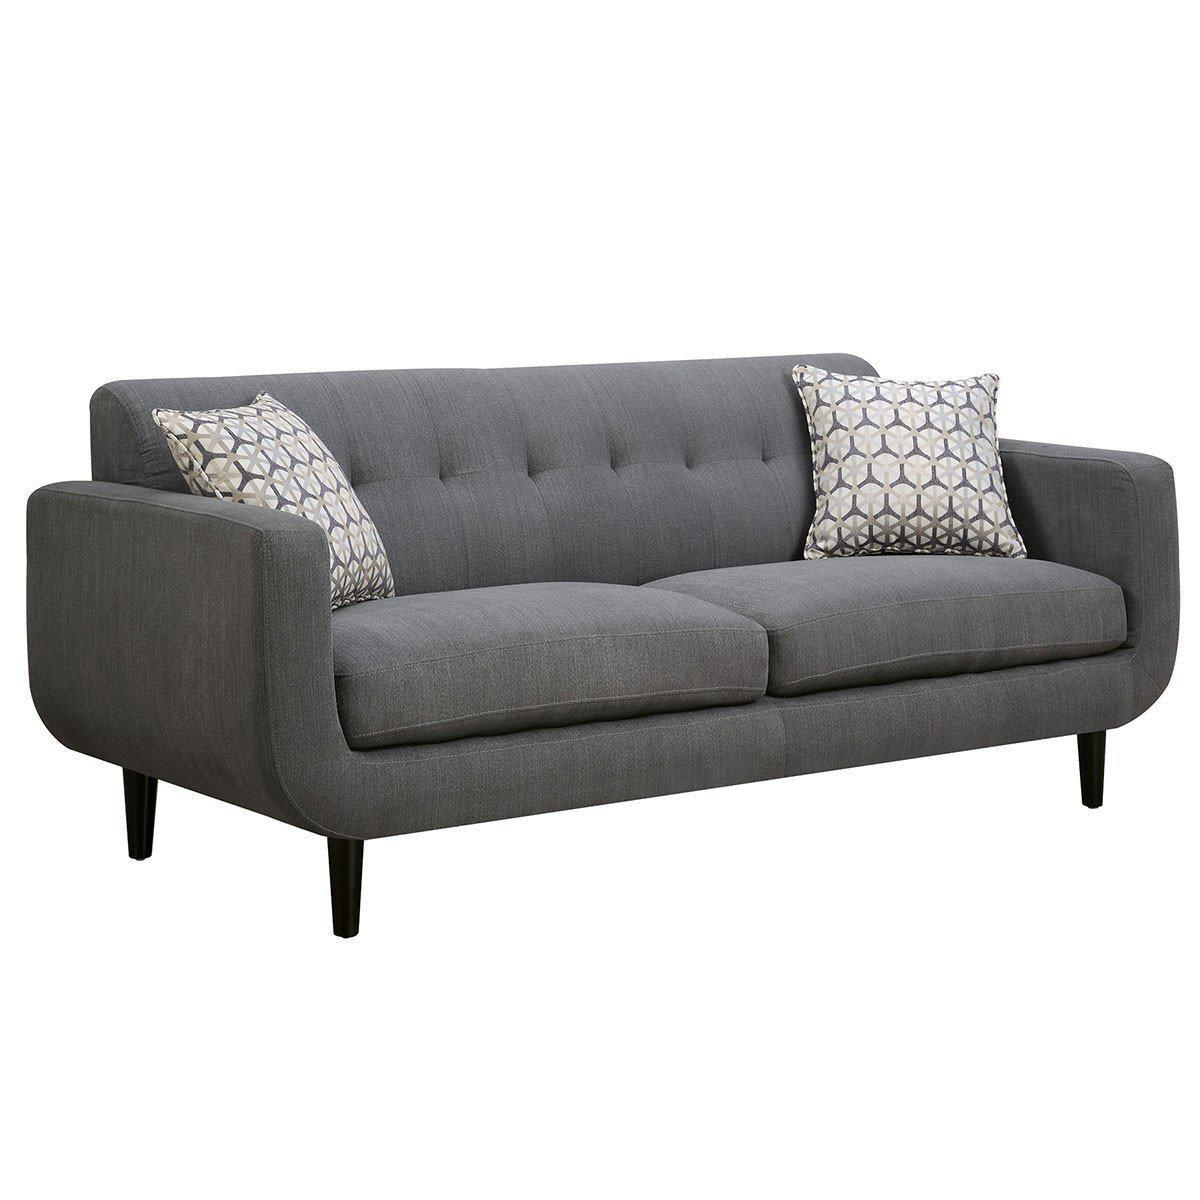 Stansall Sofa-sofas-Jennifer Furniture